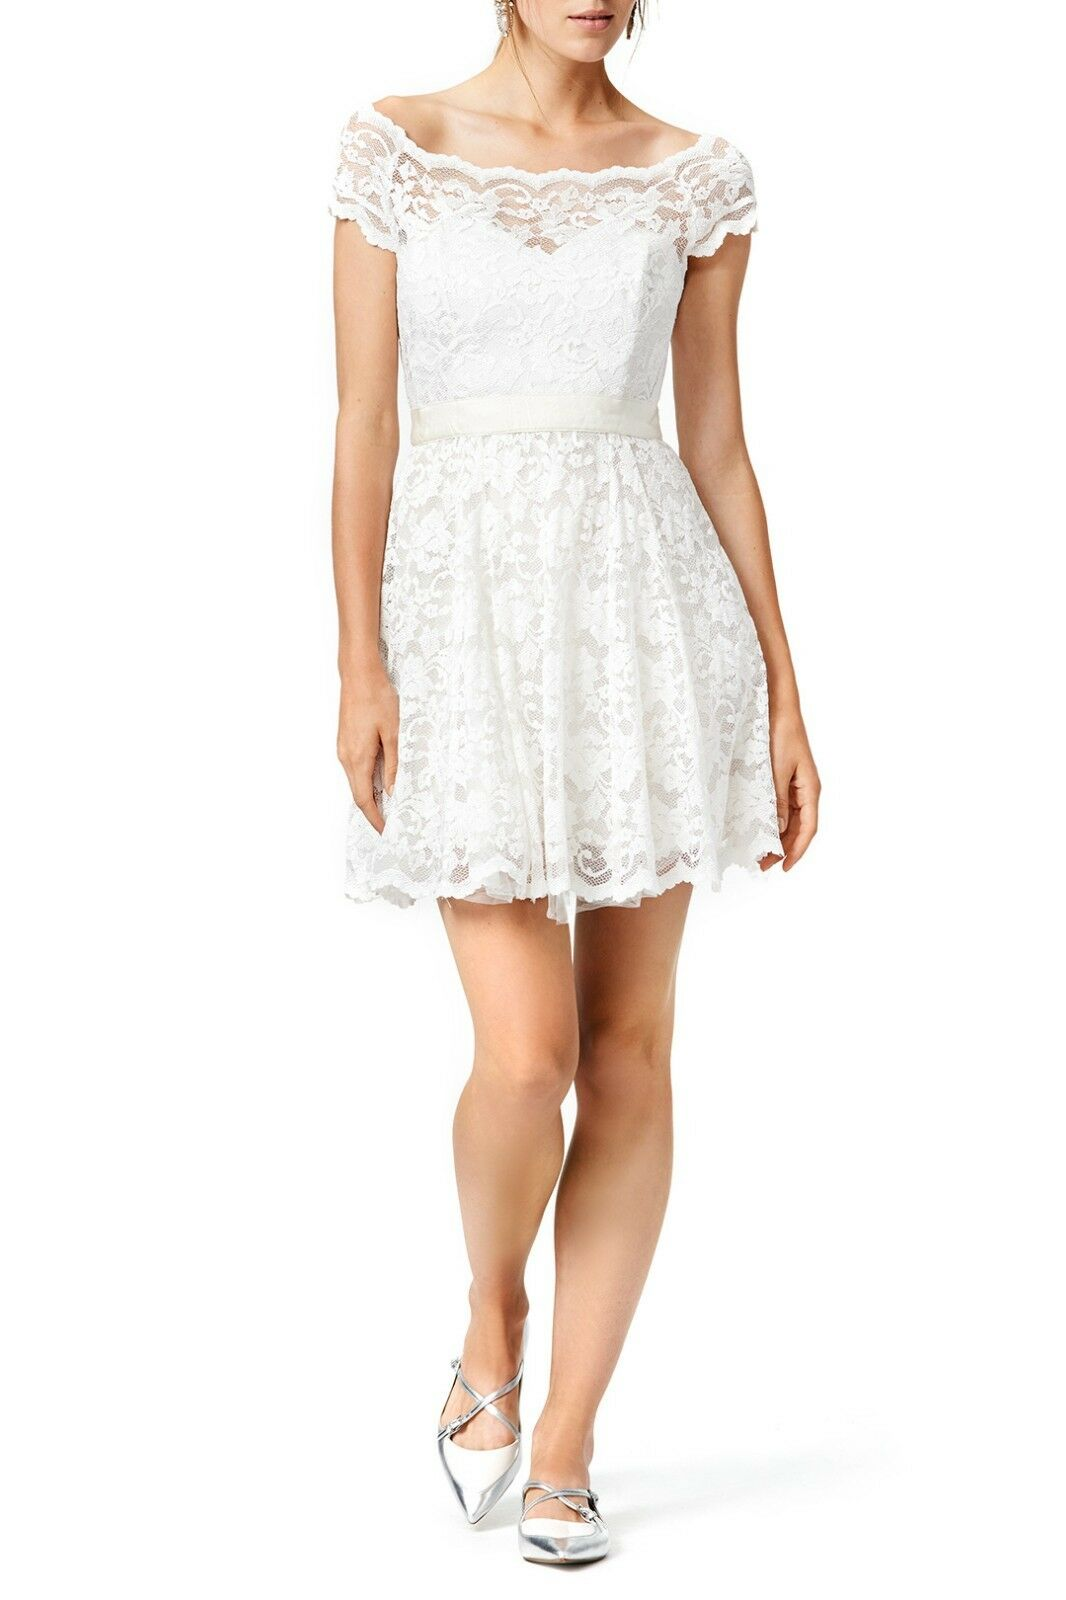 Badgley Mischka Vision In White Lace Dress Size 2